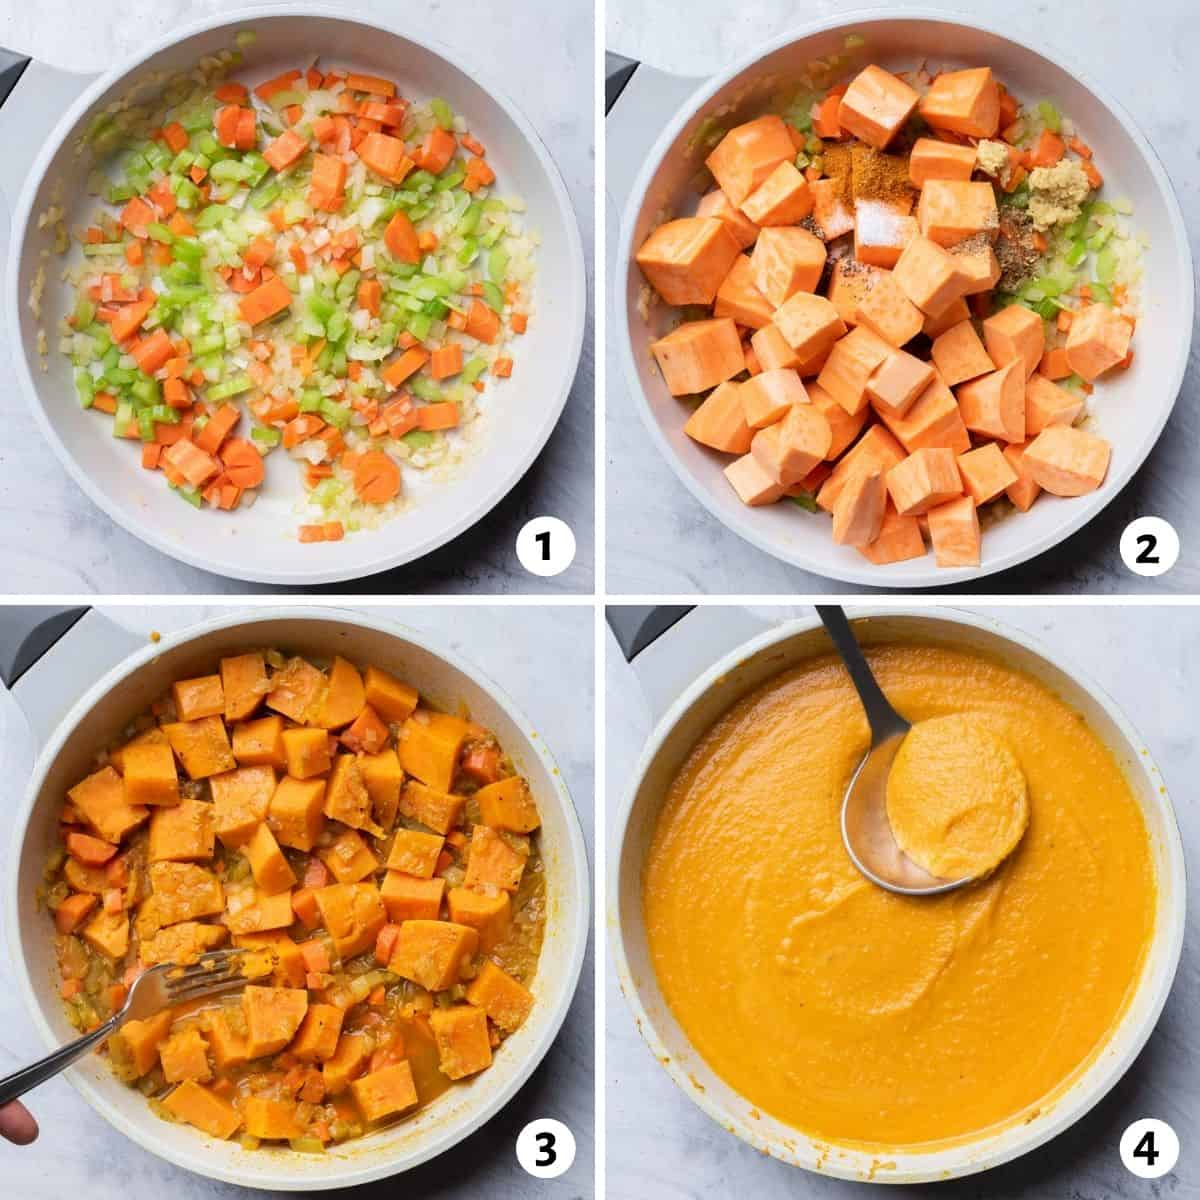 4 image collage to show how to make the soup recipe